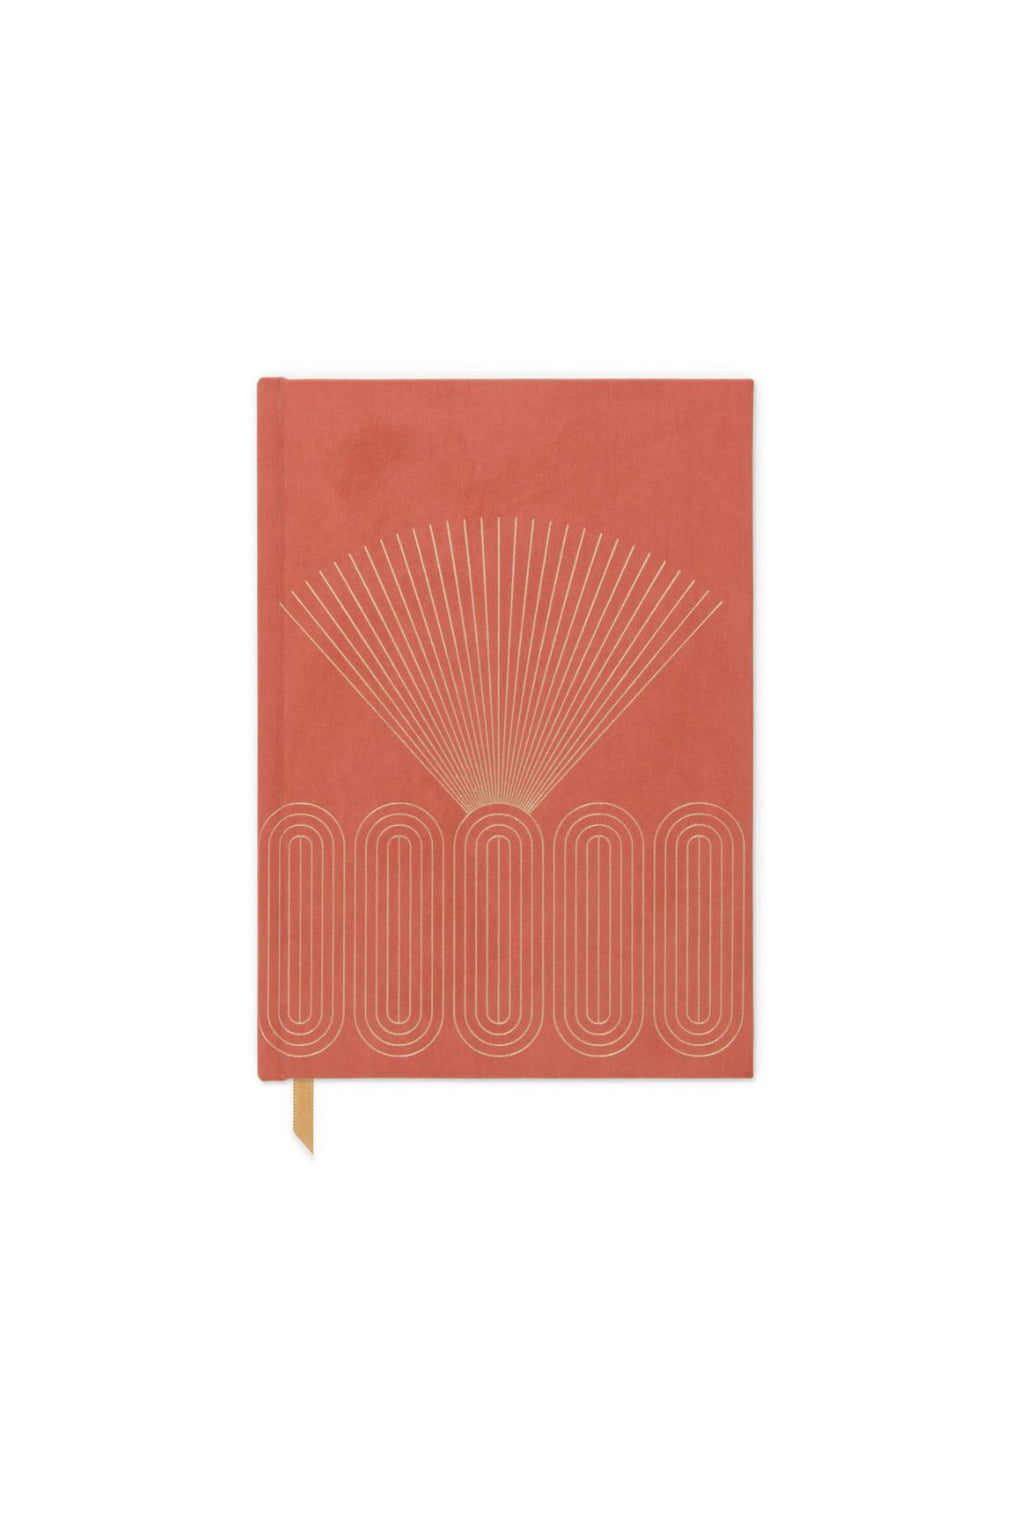 Designworks Ink Bookcloth Cover Bound Journal - Bright Terracotta Radiant Rays